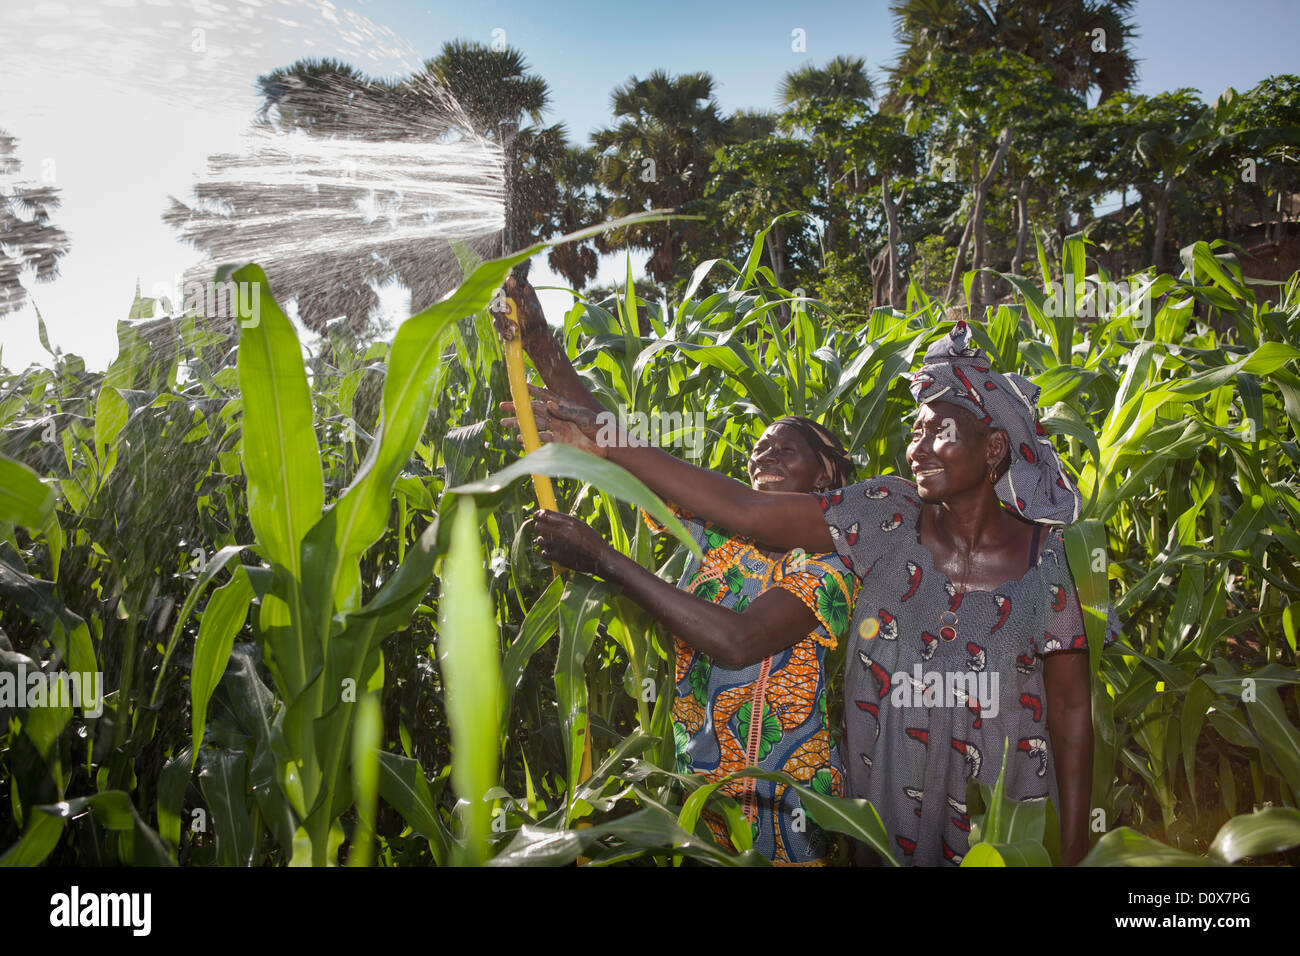 Women water their garden with the help of treadle pump irrigation system in Doba, Chad, Africa. - Stock Image